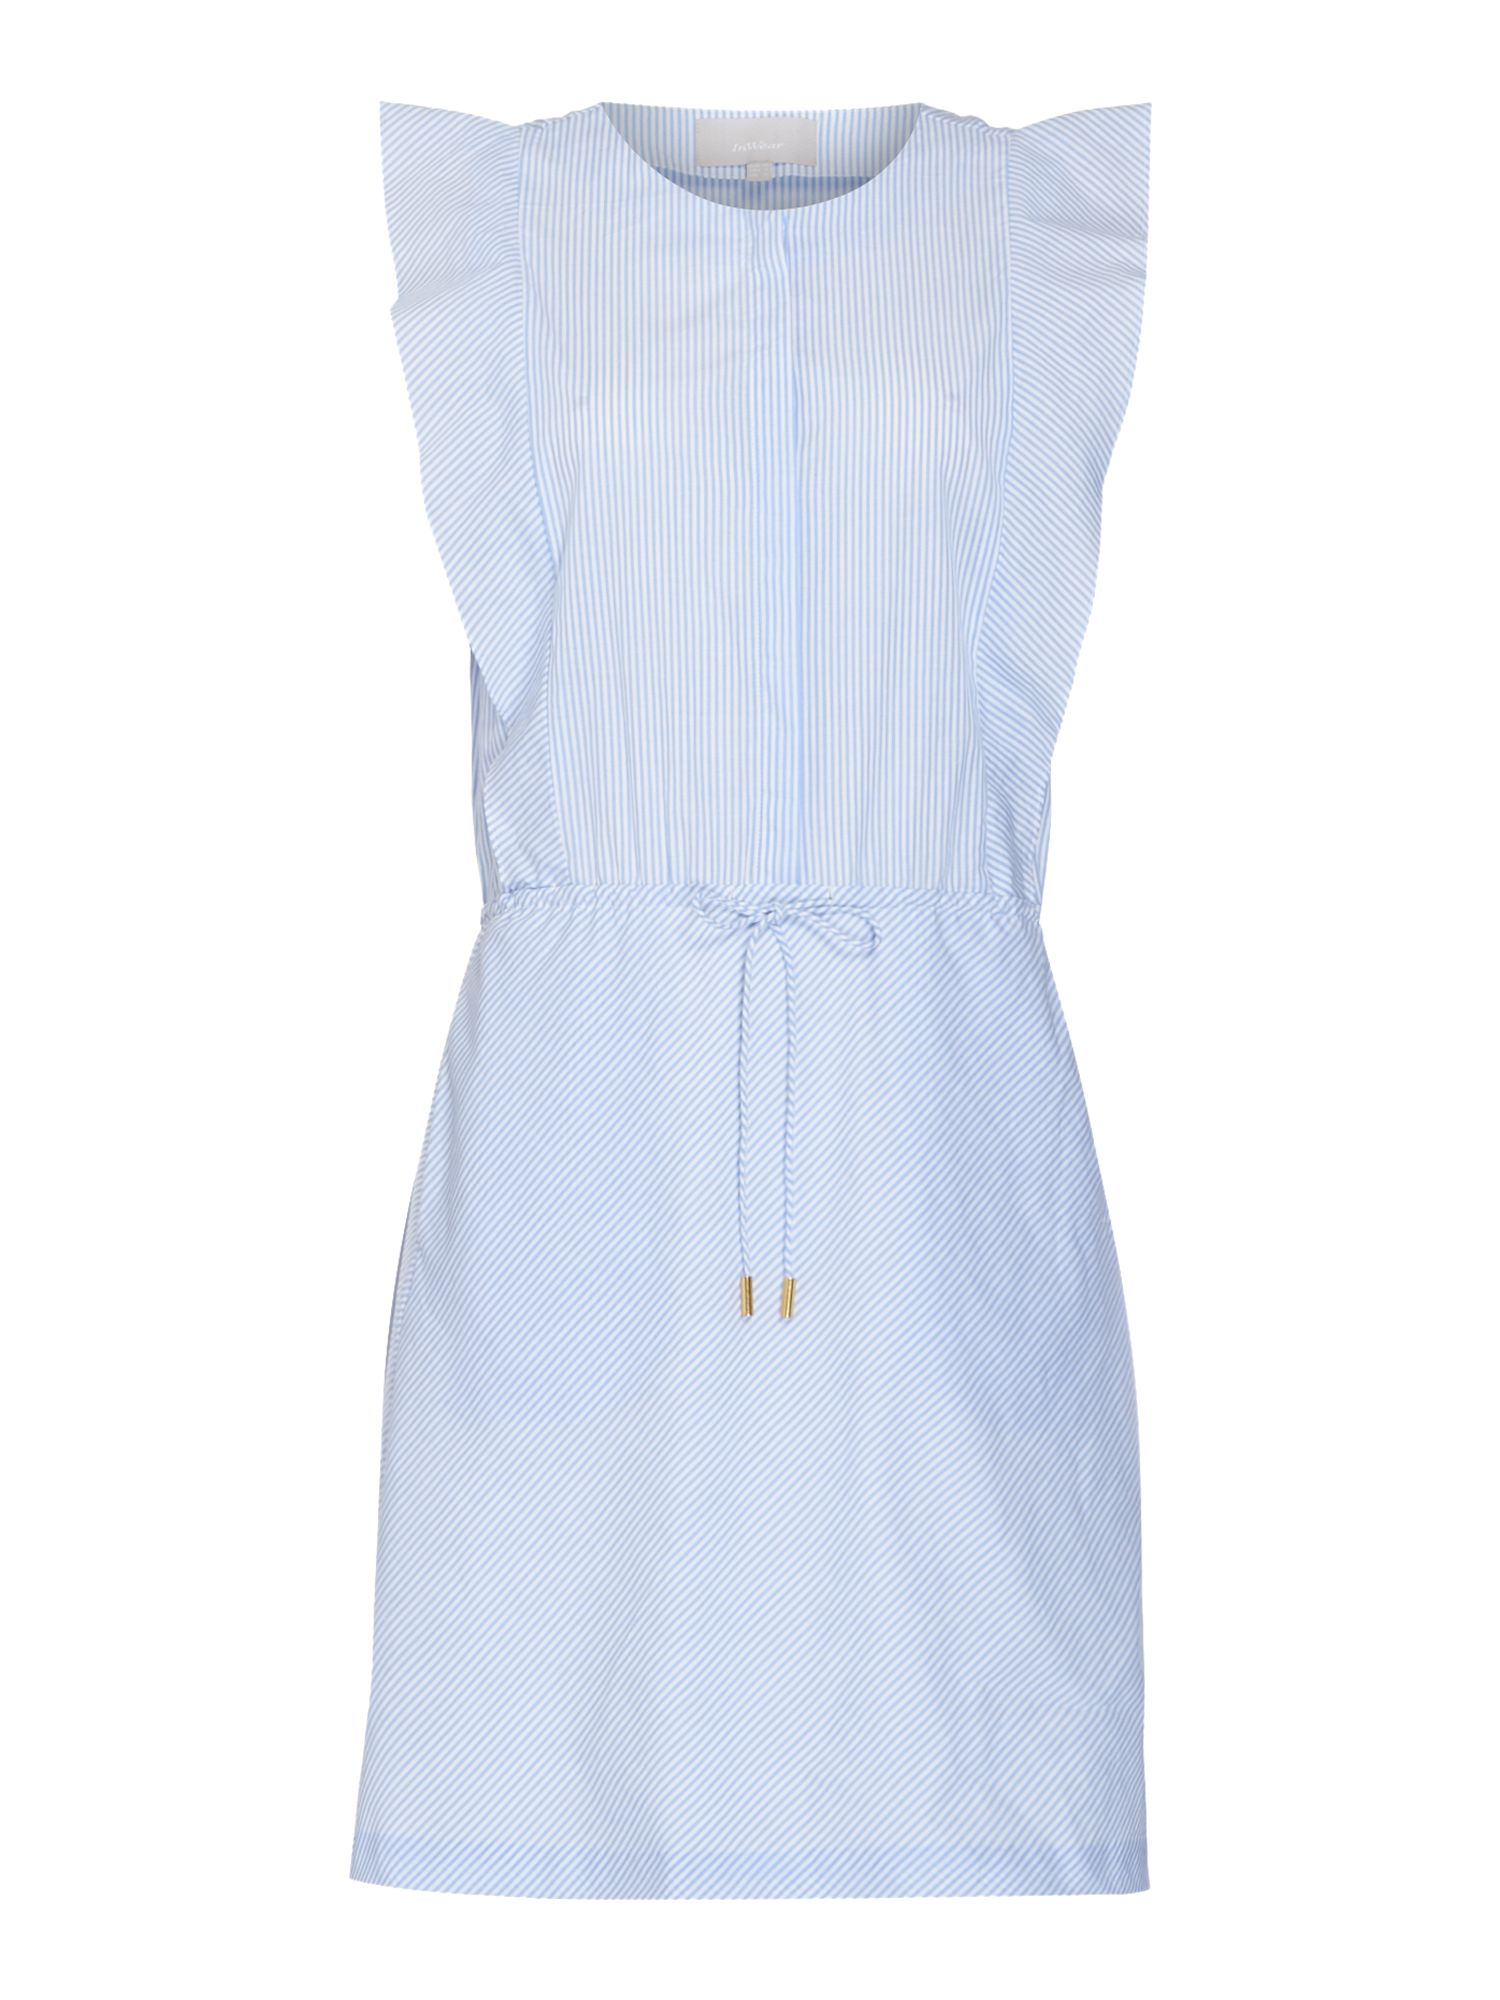 In Wear Sleeveless frill detail button up dress, Blue